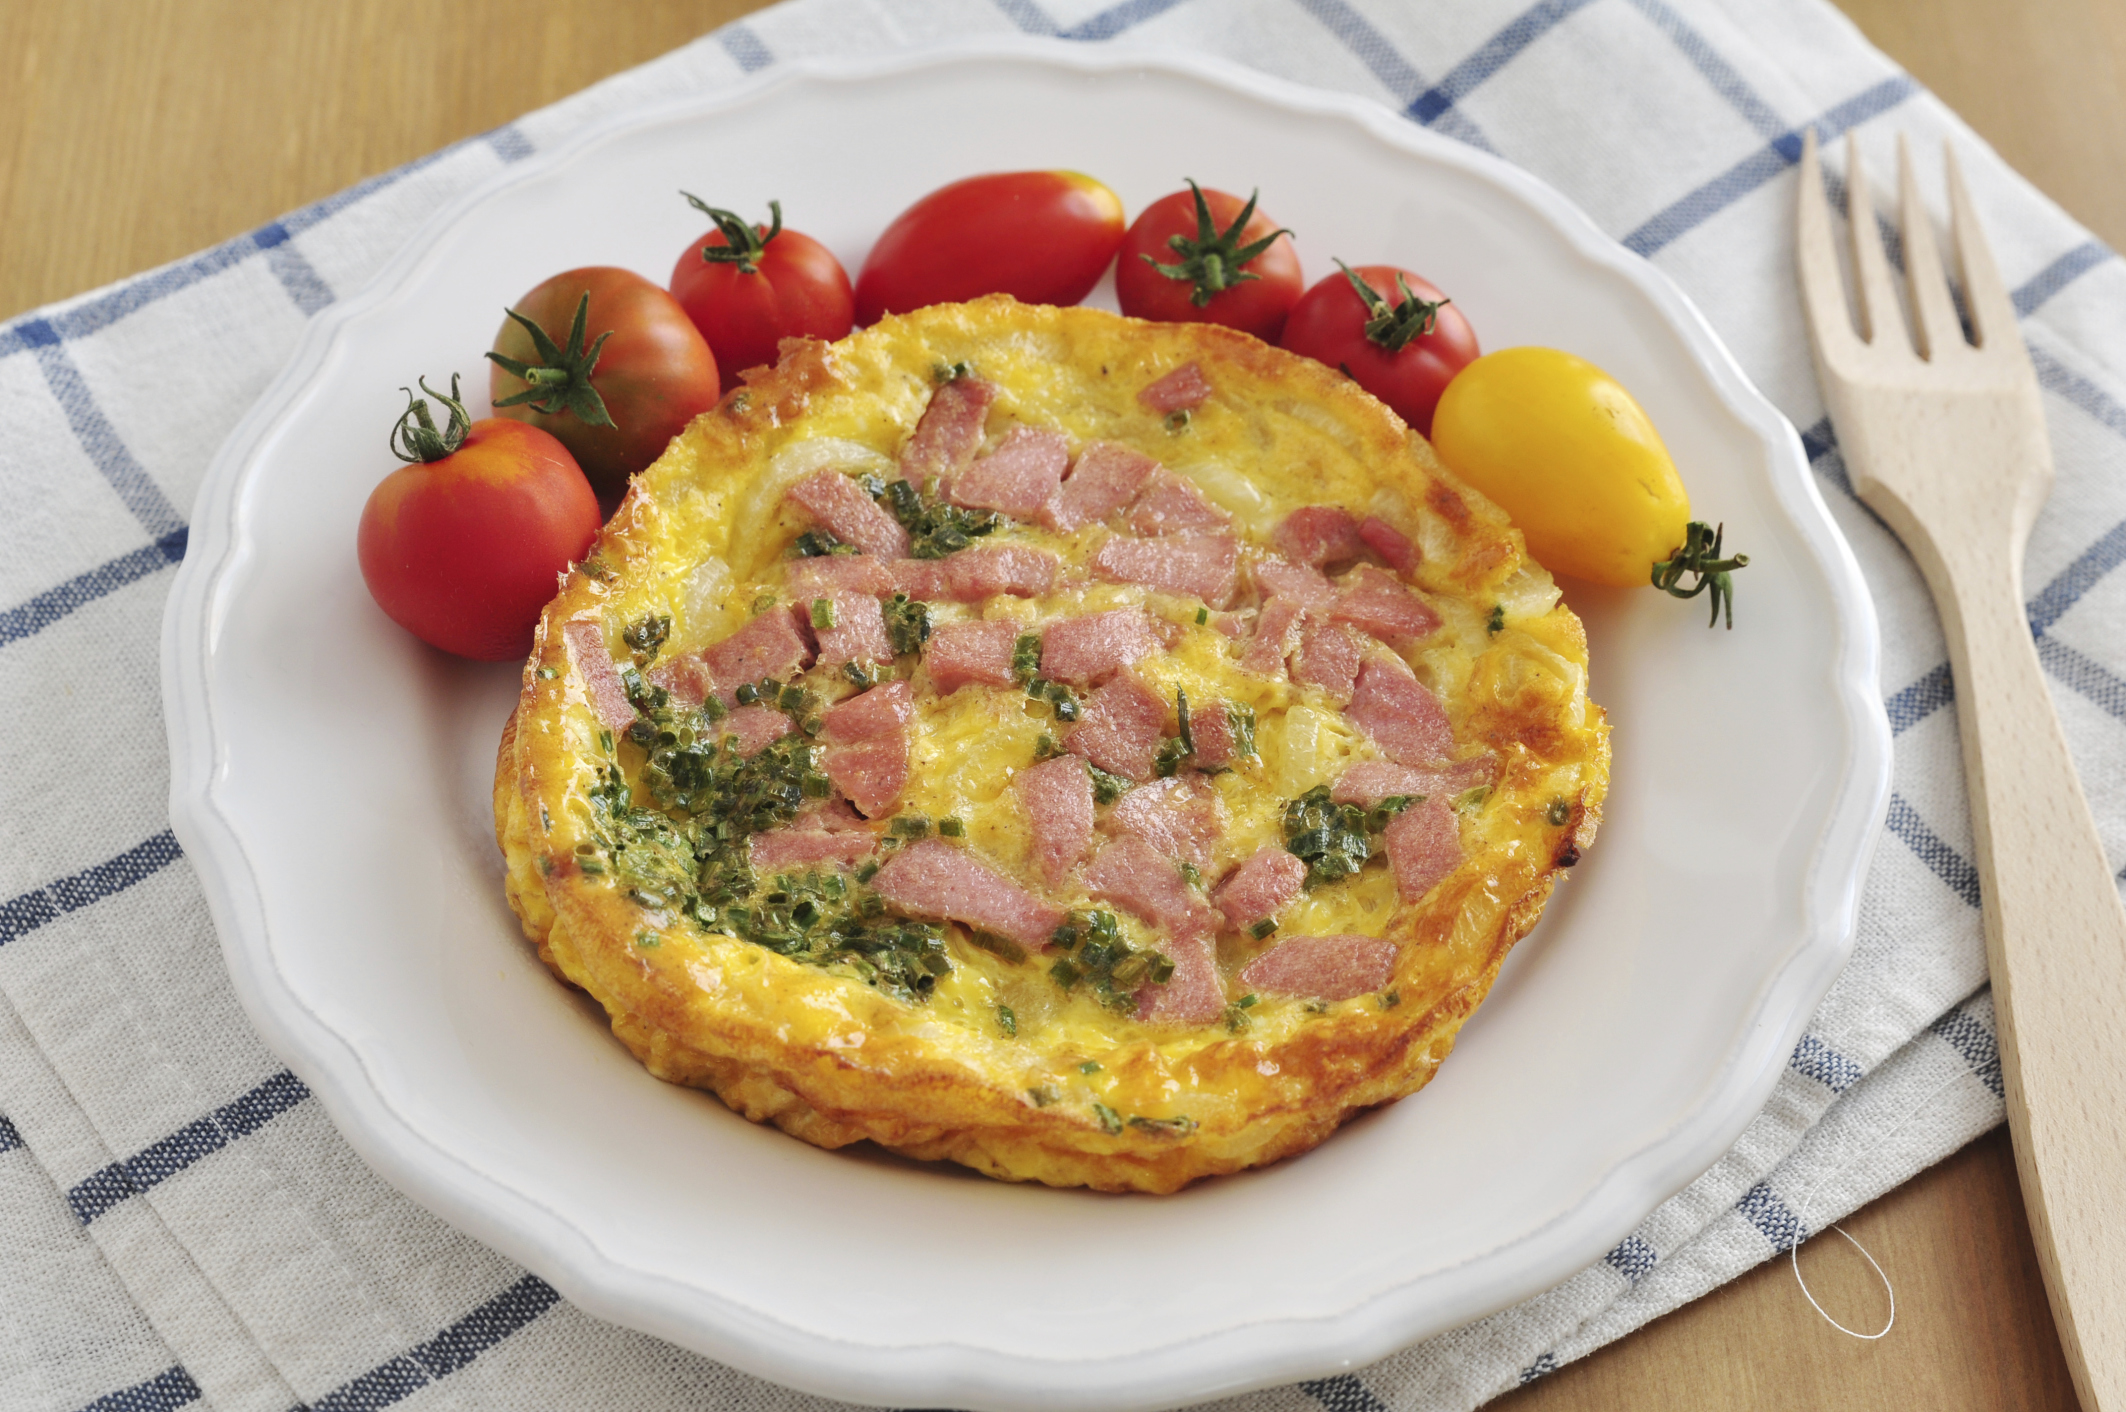 How many calories in an omelet 43